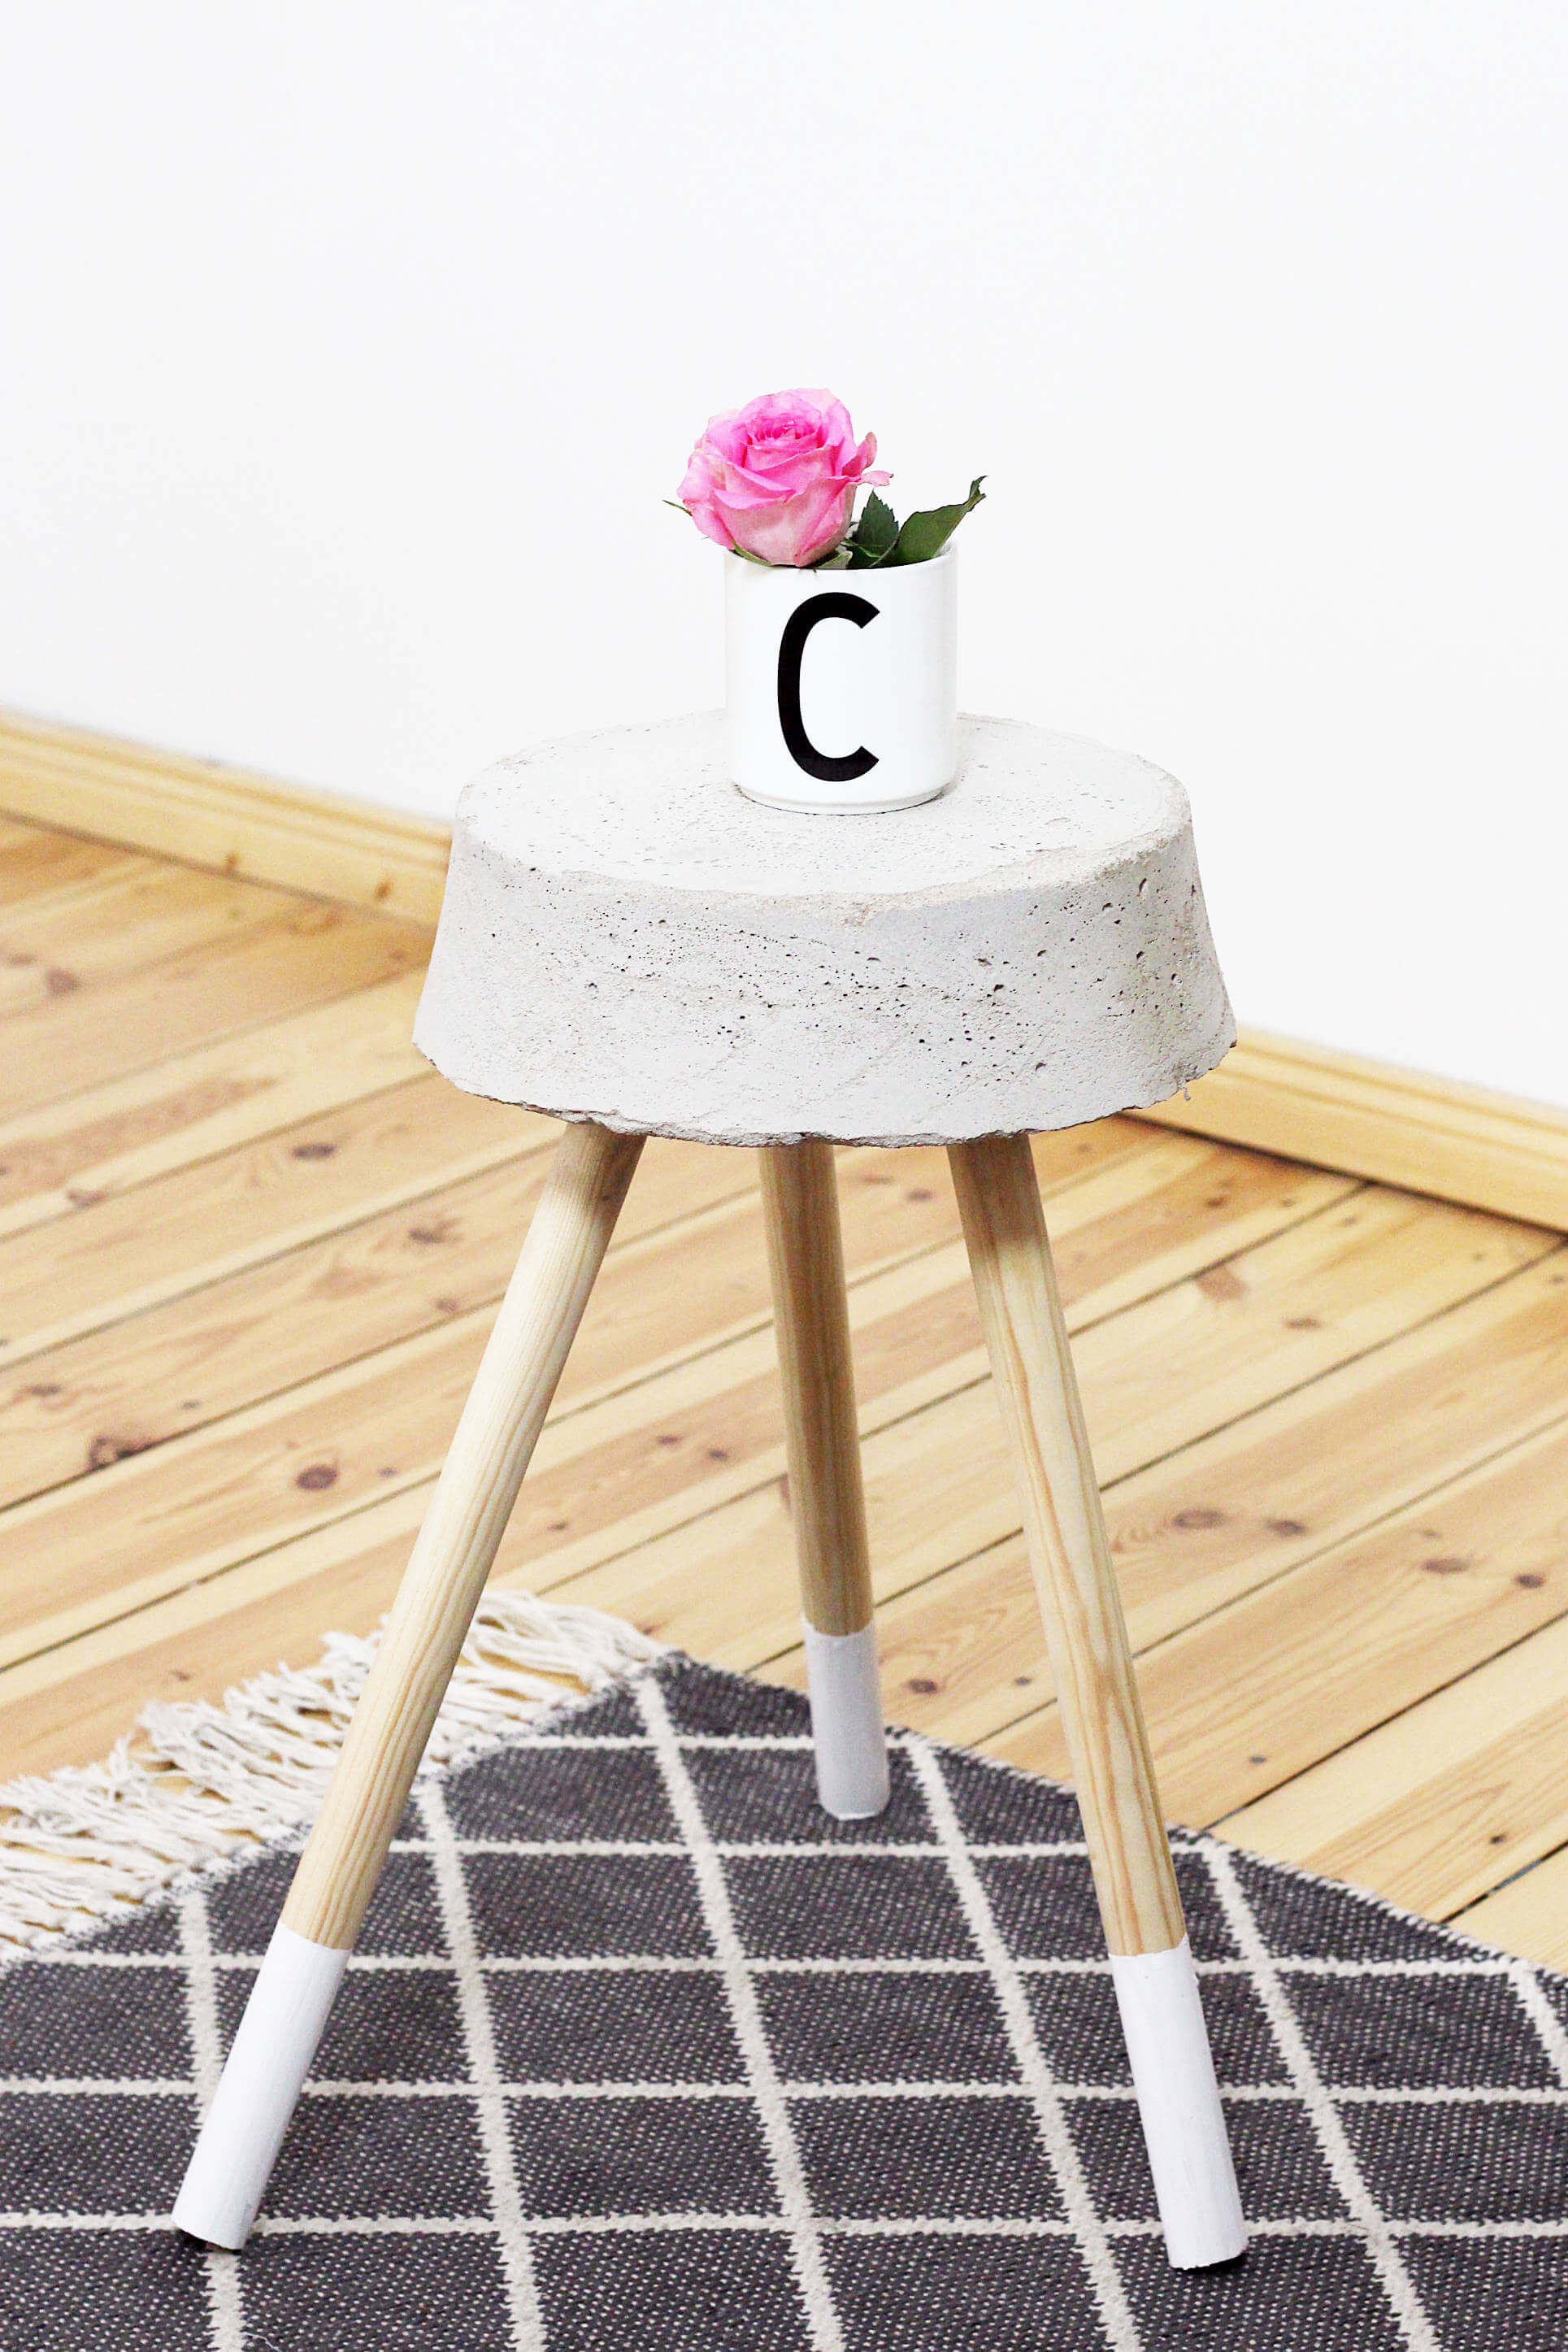 diy-beton-hocker-zement-moebel-scandi-interior-diy-blog